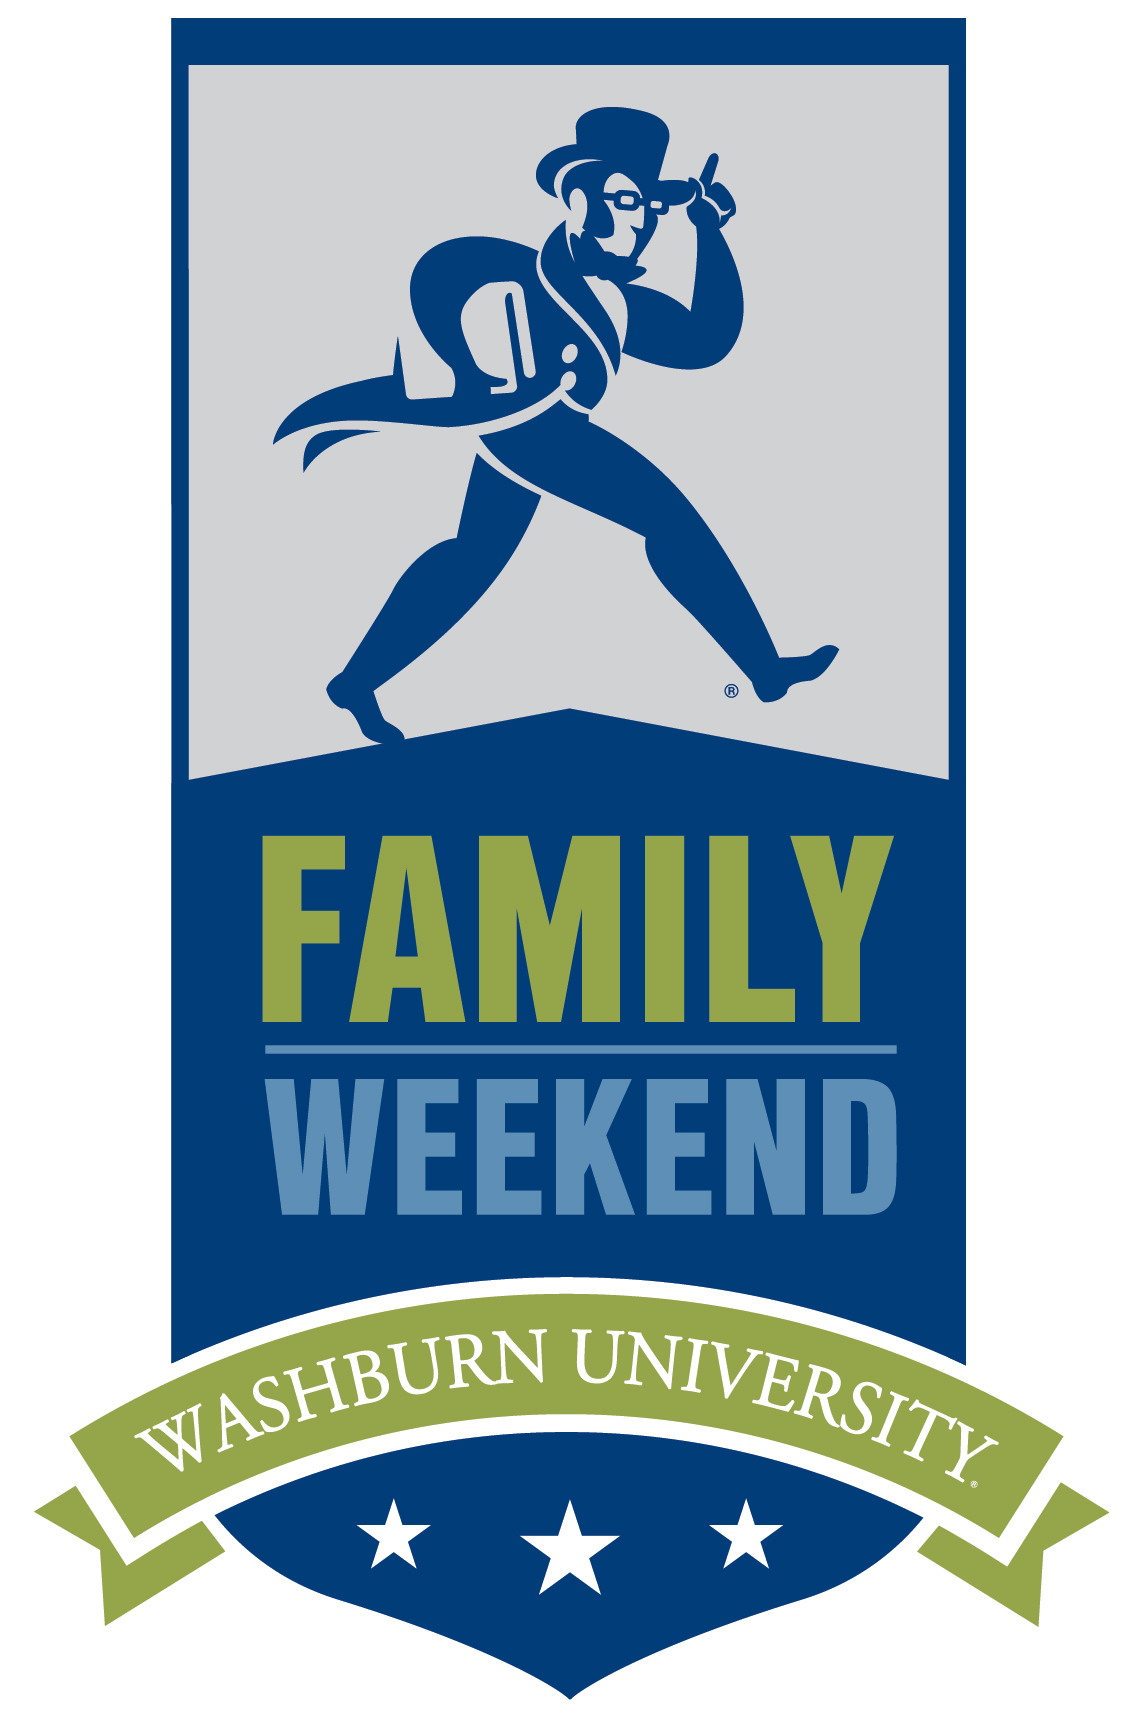 Family Weekend Graphic